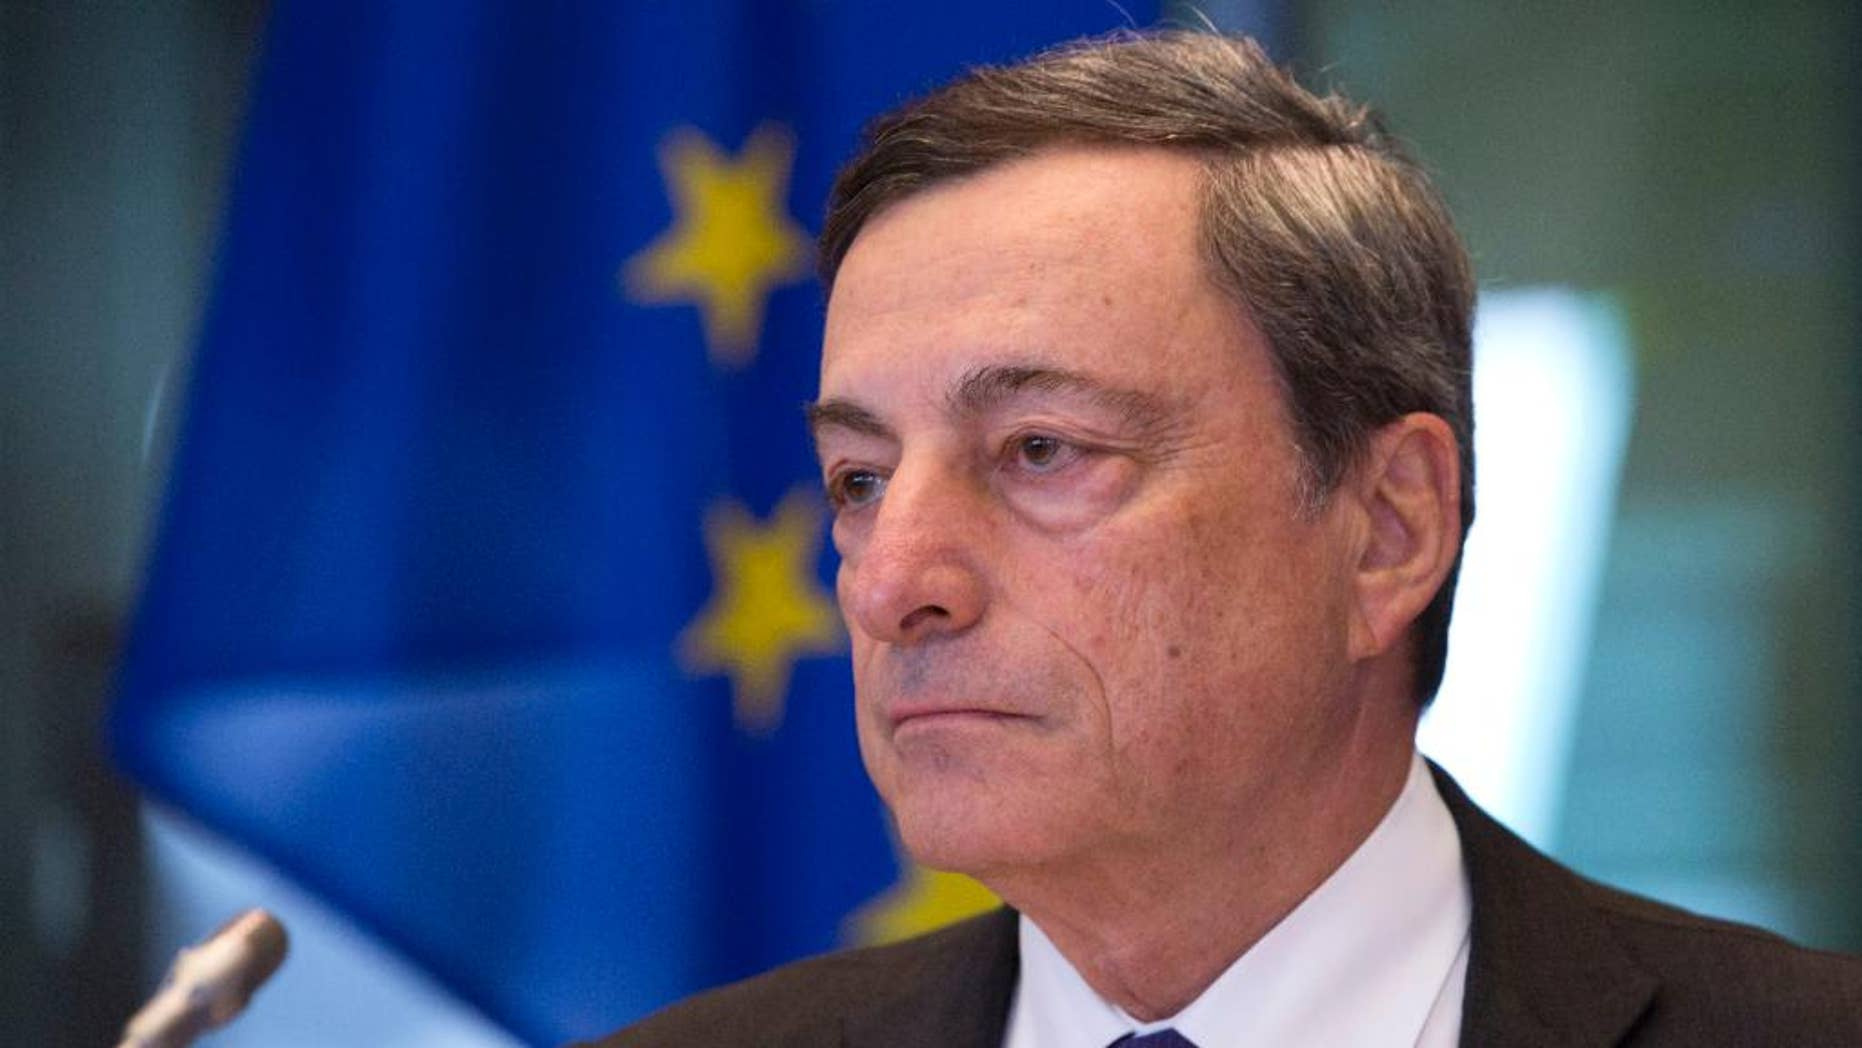 FILE - In this Monday, Sept. 26, 2016 file photo, Governor of the European Central Bank Mario Draghi pauses during a session of the Economic and Monetary Affairs Committee at the European Parliament in Brussels. Investors will sift European Central Bank head Mario Draghi's remarks on Thursday, Oct. 20. 2016 for clues about a possible extension of its 1.74 trillion euro ($1.91 trillion) bond-buying stimulus program. (AP Photo/Virginia Mayo, File)